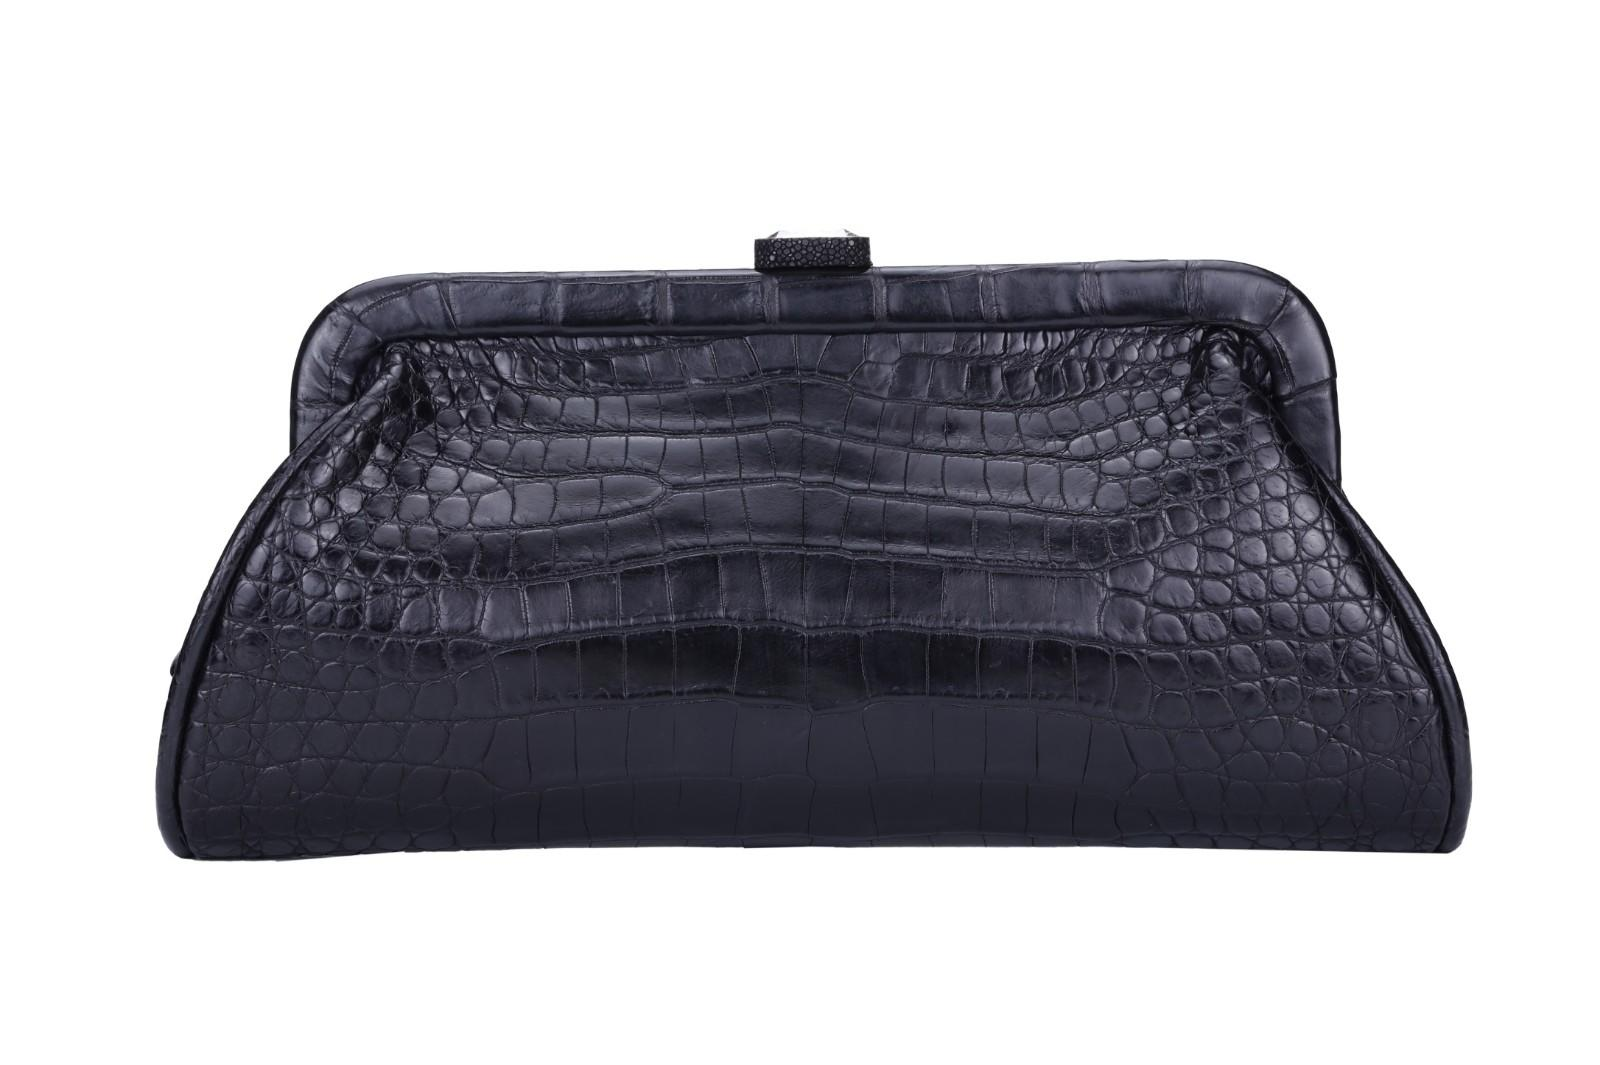 GF bags wholesale fancy clutch bags closure for men